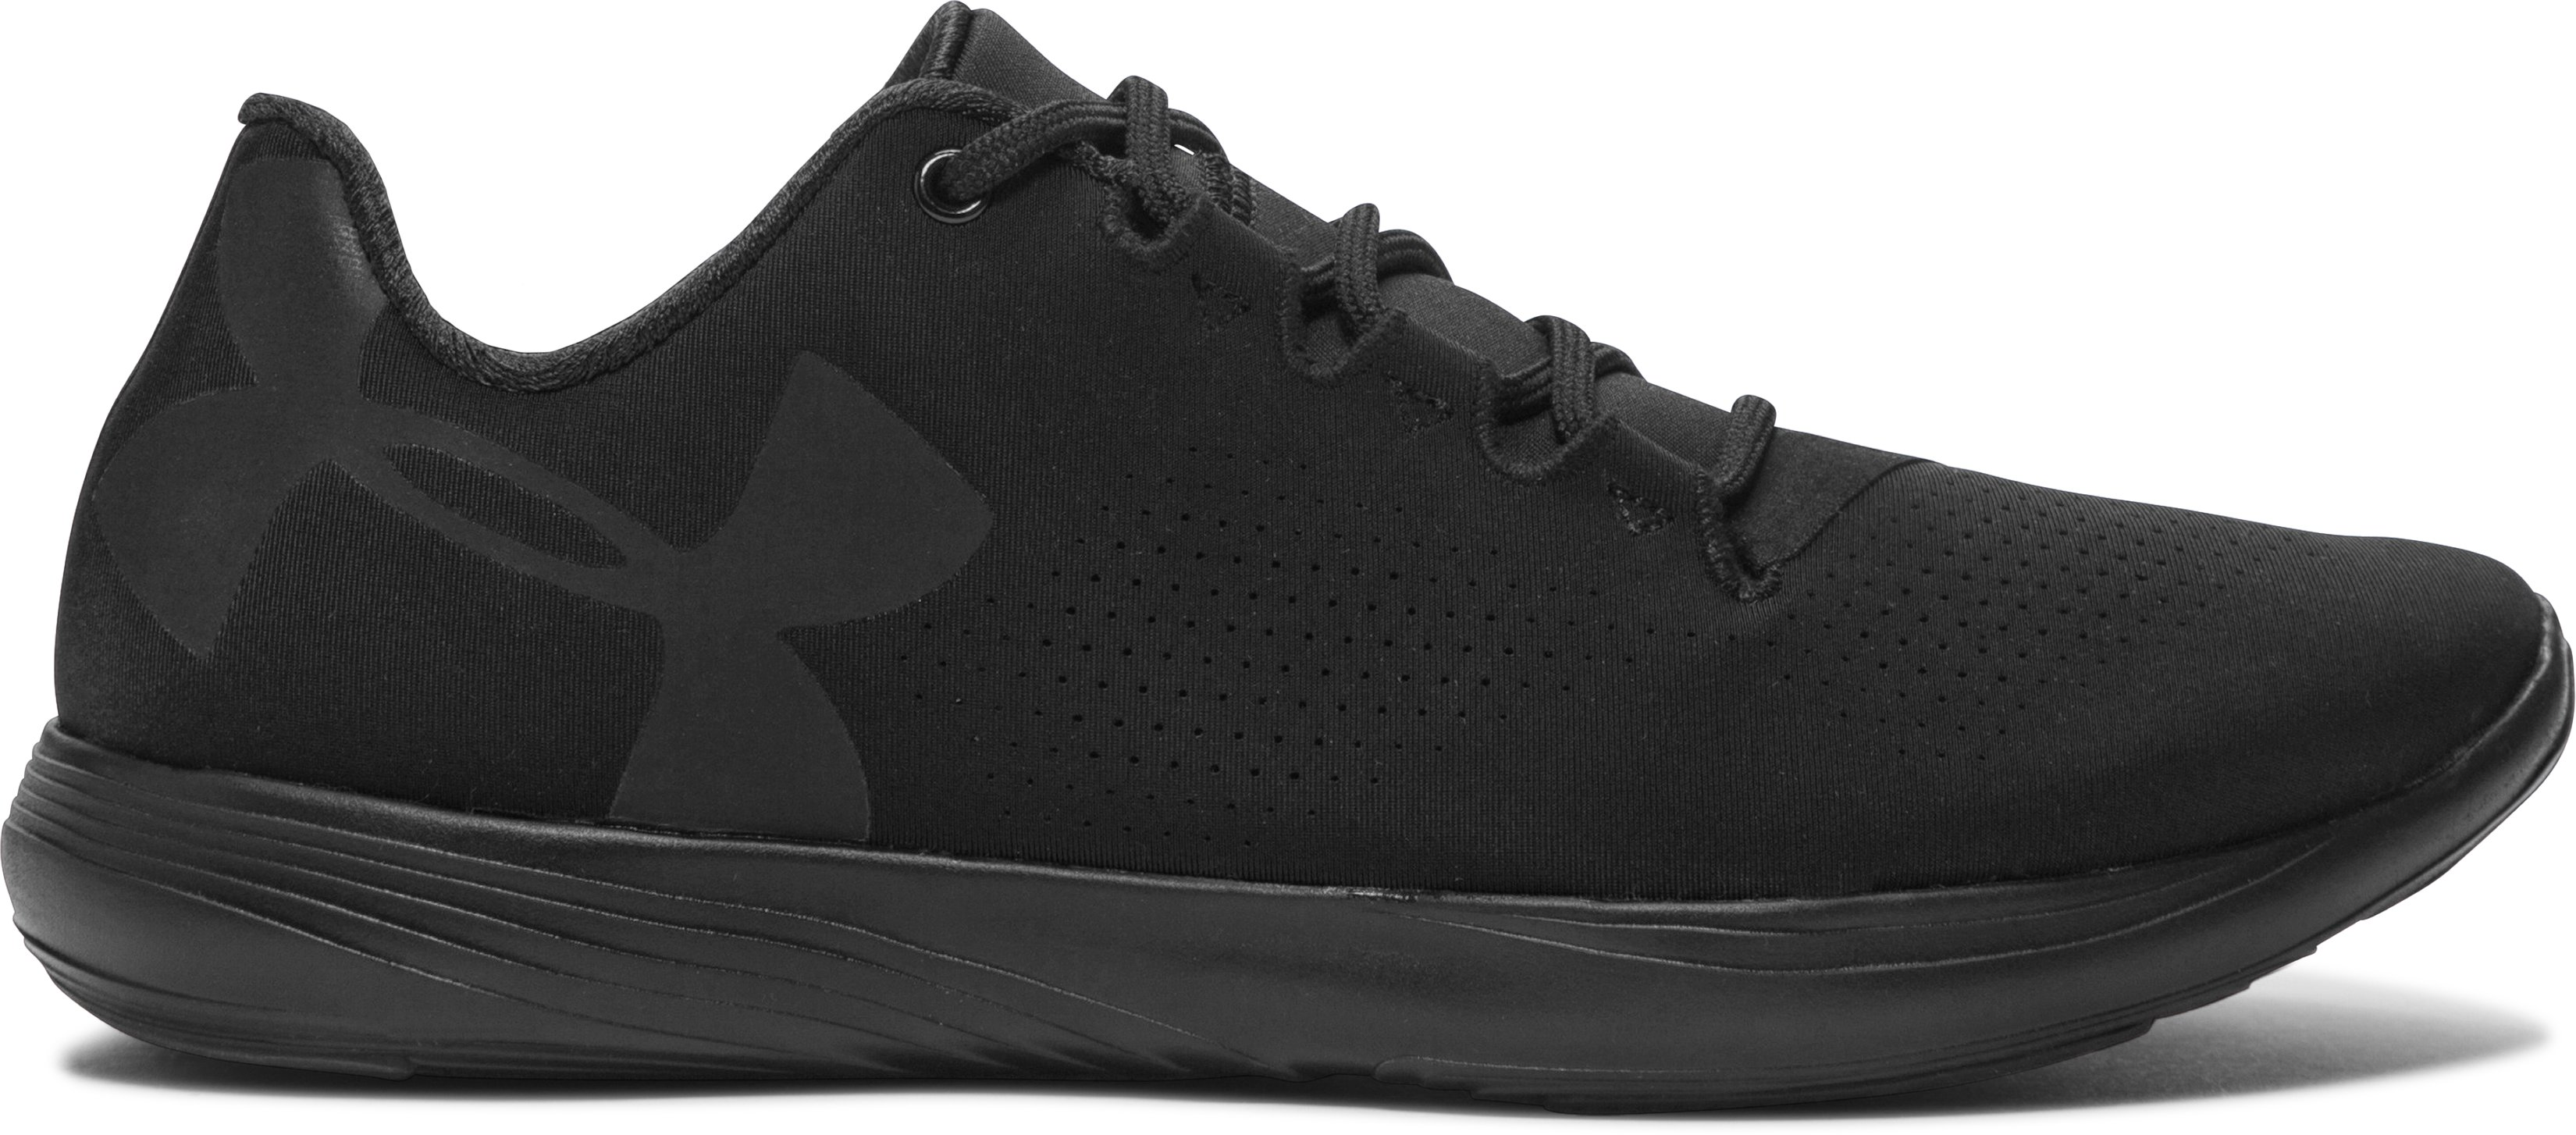 Women's UA Street Precision Low Training Shoes, Black